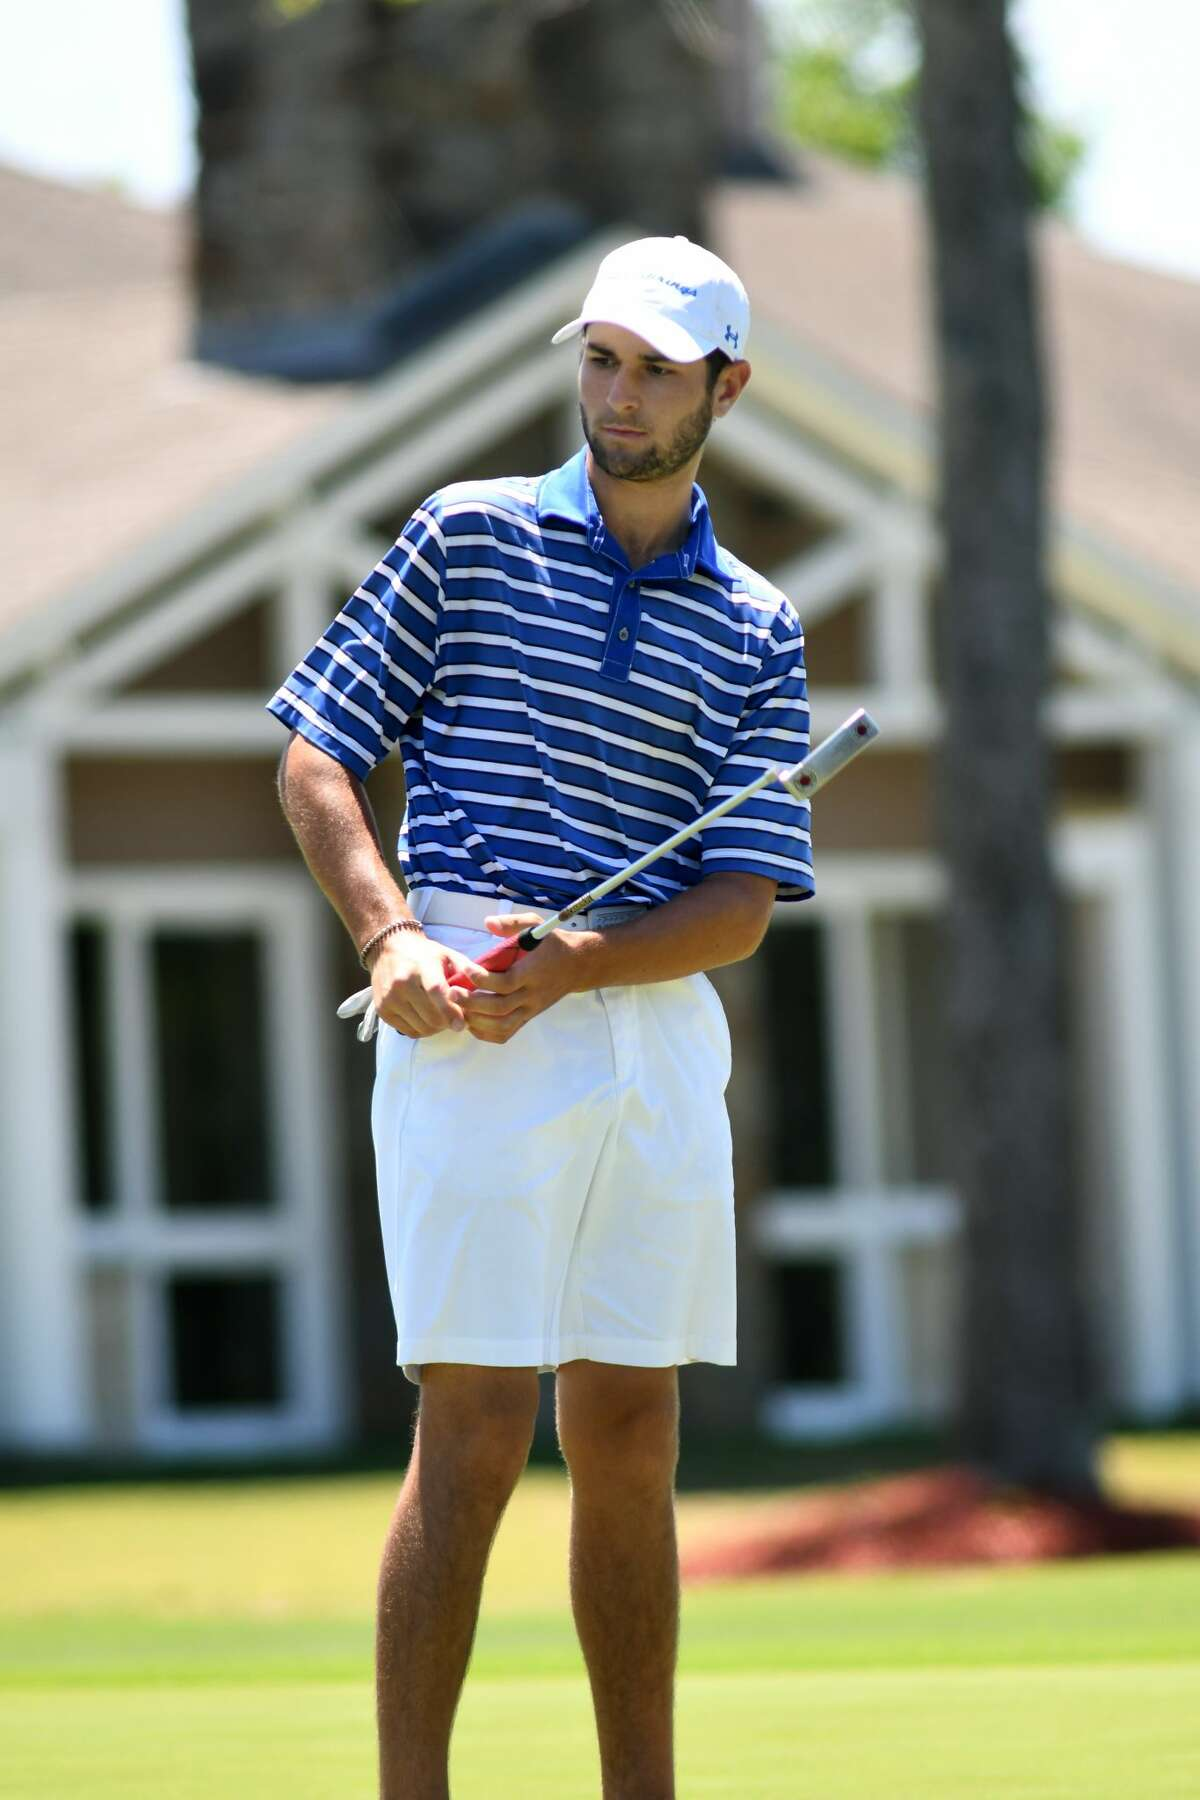 Clear Springs sophomore Niko Nebout follows his putt on the par 4 16th hole during the Region III-6A Boys Golf Championships at Eagle Pointe Golf Club in Mont Belvieu on Thursday, April 27, 2017. (Photo by Jerry Baker/Freelance)